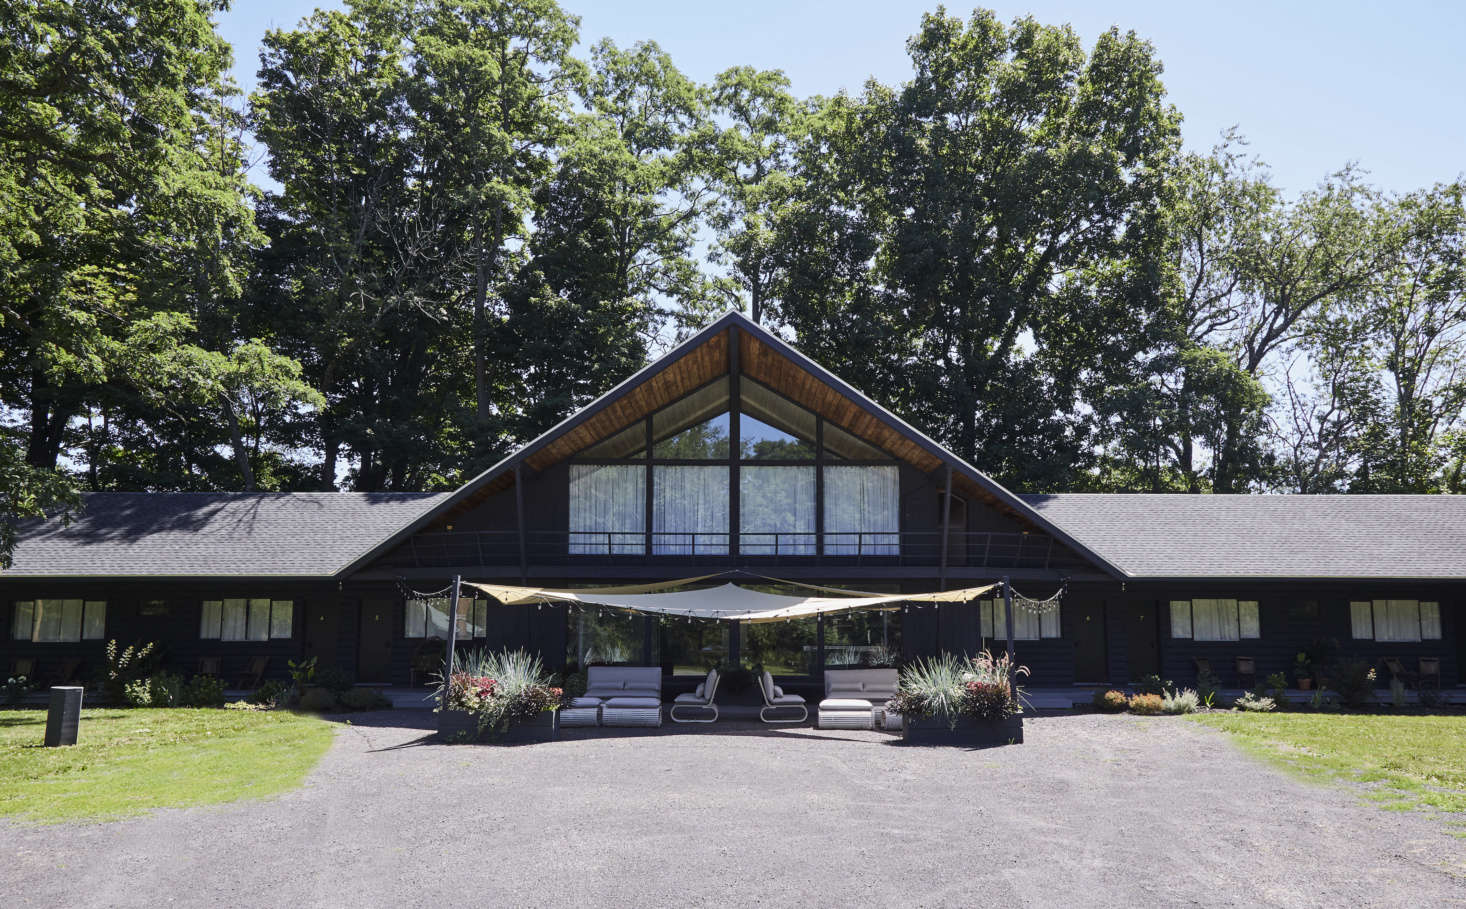 """The lodge is in the town of Greenville, New York, 30 minutes west of Hudson and will be open year-round (there's nearby skiing). It has a new front patio with a canopy that shades wicker furniture from Stori Modern's Novel collection, plus a new asphalt roof. """"The roof made a huge difference in the overall look of the building,"""" says Pflug. """"It's not something I 'see' anymore, but the overall effectmade the buildinglook new."""" (Scroll to the end to see the structure as it was.)"""